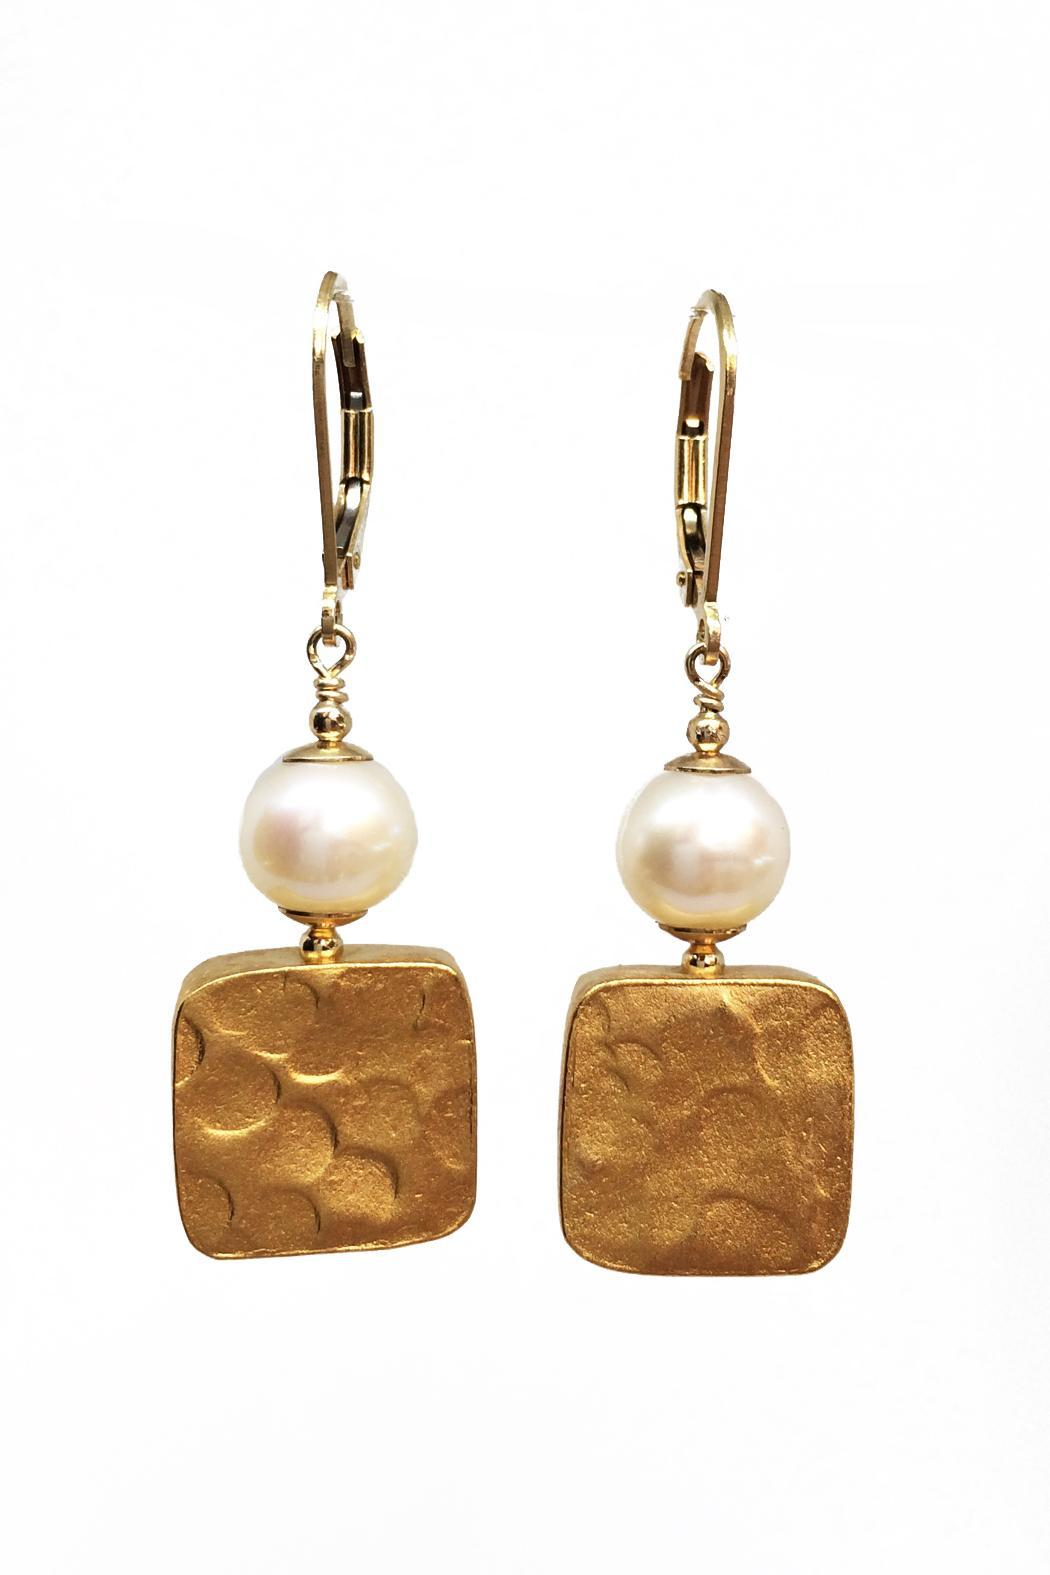 Melinda Lawton Jewelry Gold & Pearl Earrings - Main Image